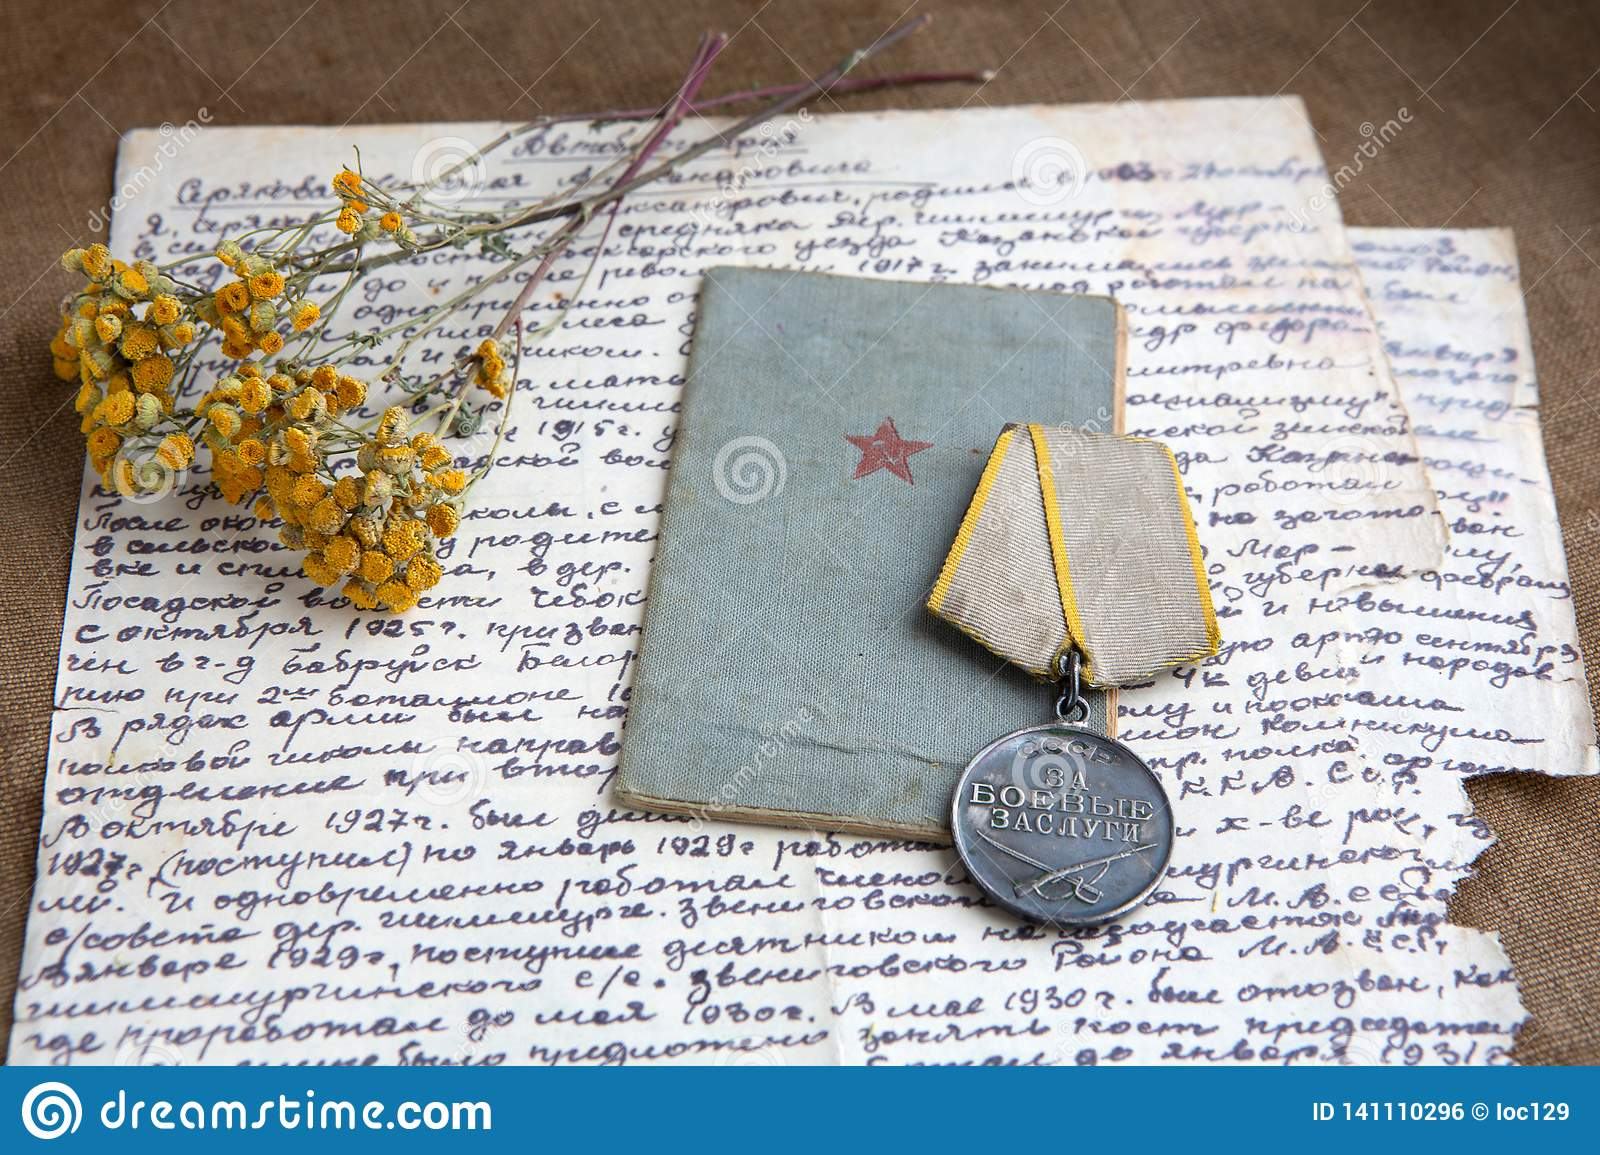 Military merit medal, old letter on canvas. Relics, close-up. Dry flowers of tansy